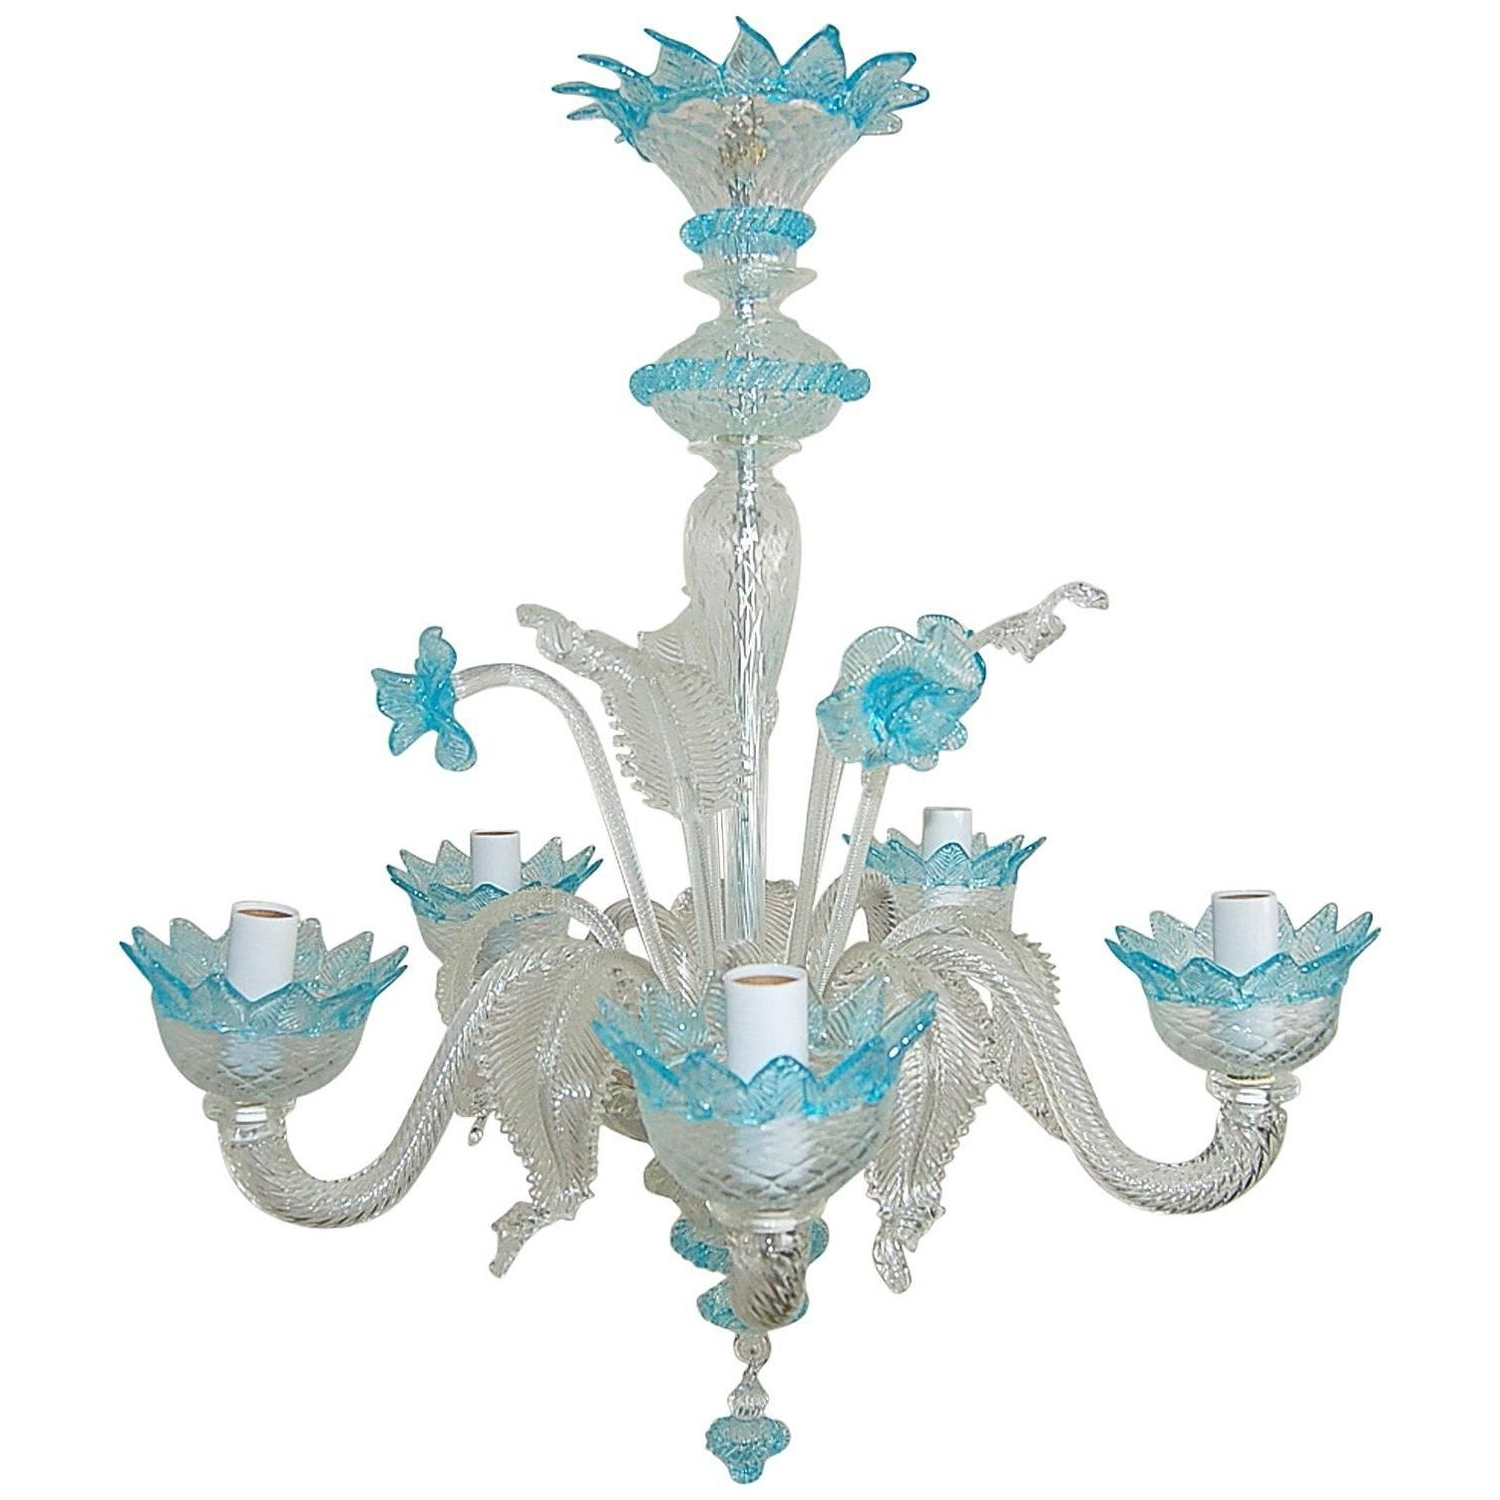 Fashionable Chandelier Murano Glass Of Crystal With Blue Accents For Sale At 1Stdibs With Regard To Turquoise Blue Glass Chandeliers (View 3 of 20)